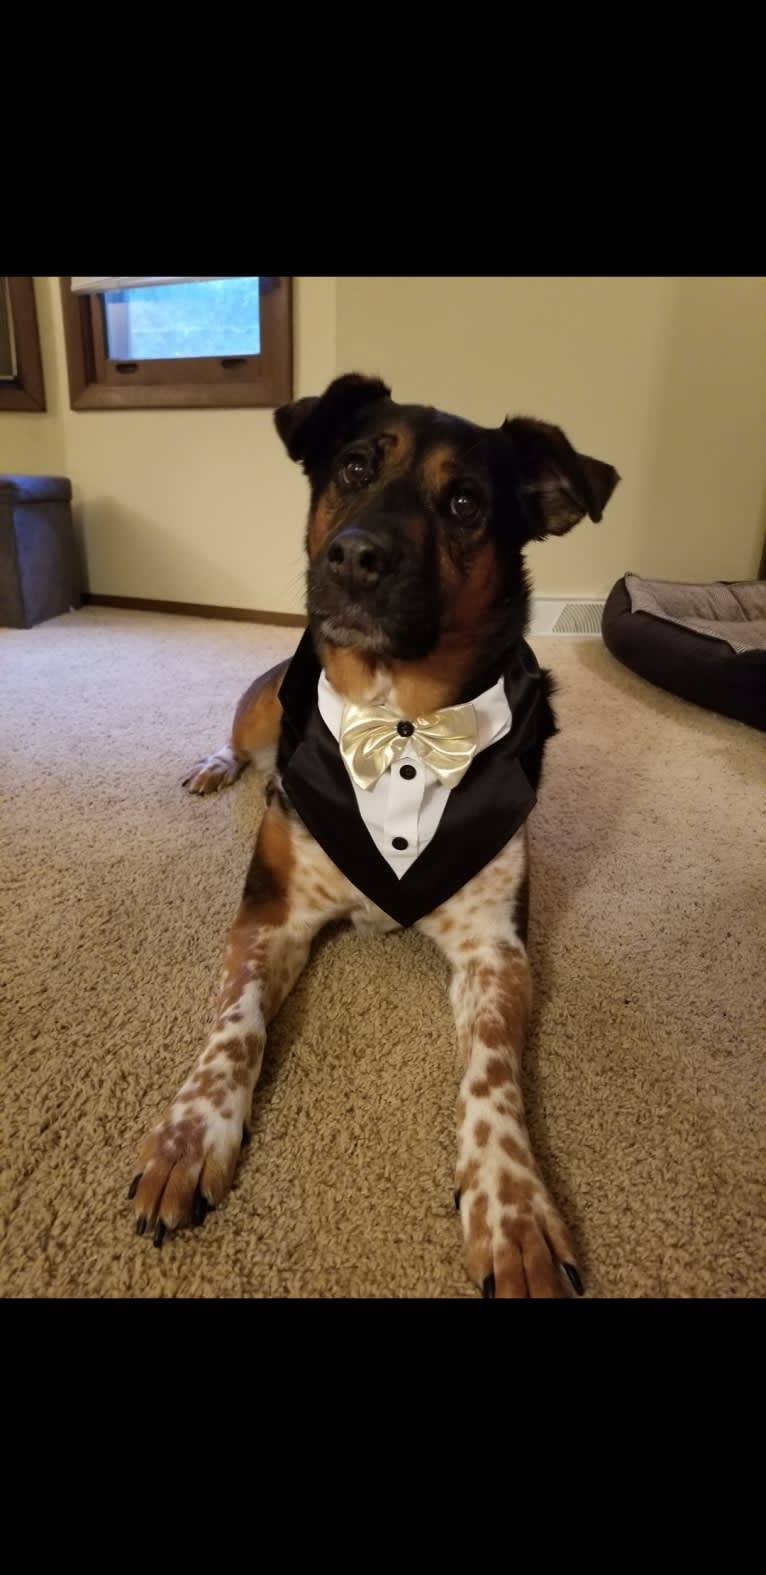 Photo of T, a Rottweiler and Samoyed mix in Grand Rapids, Michigan, USA